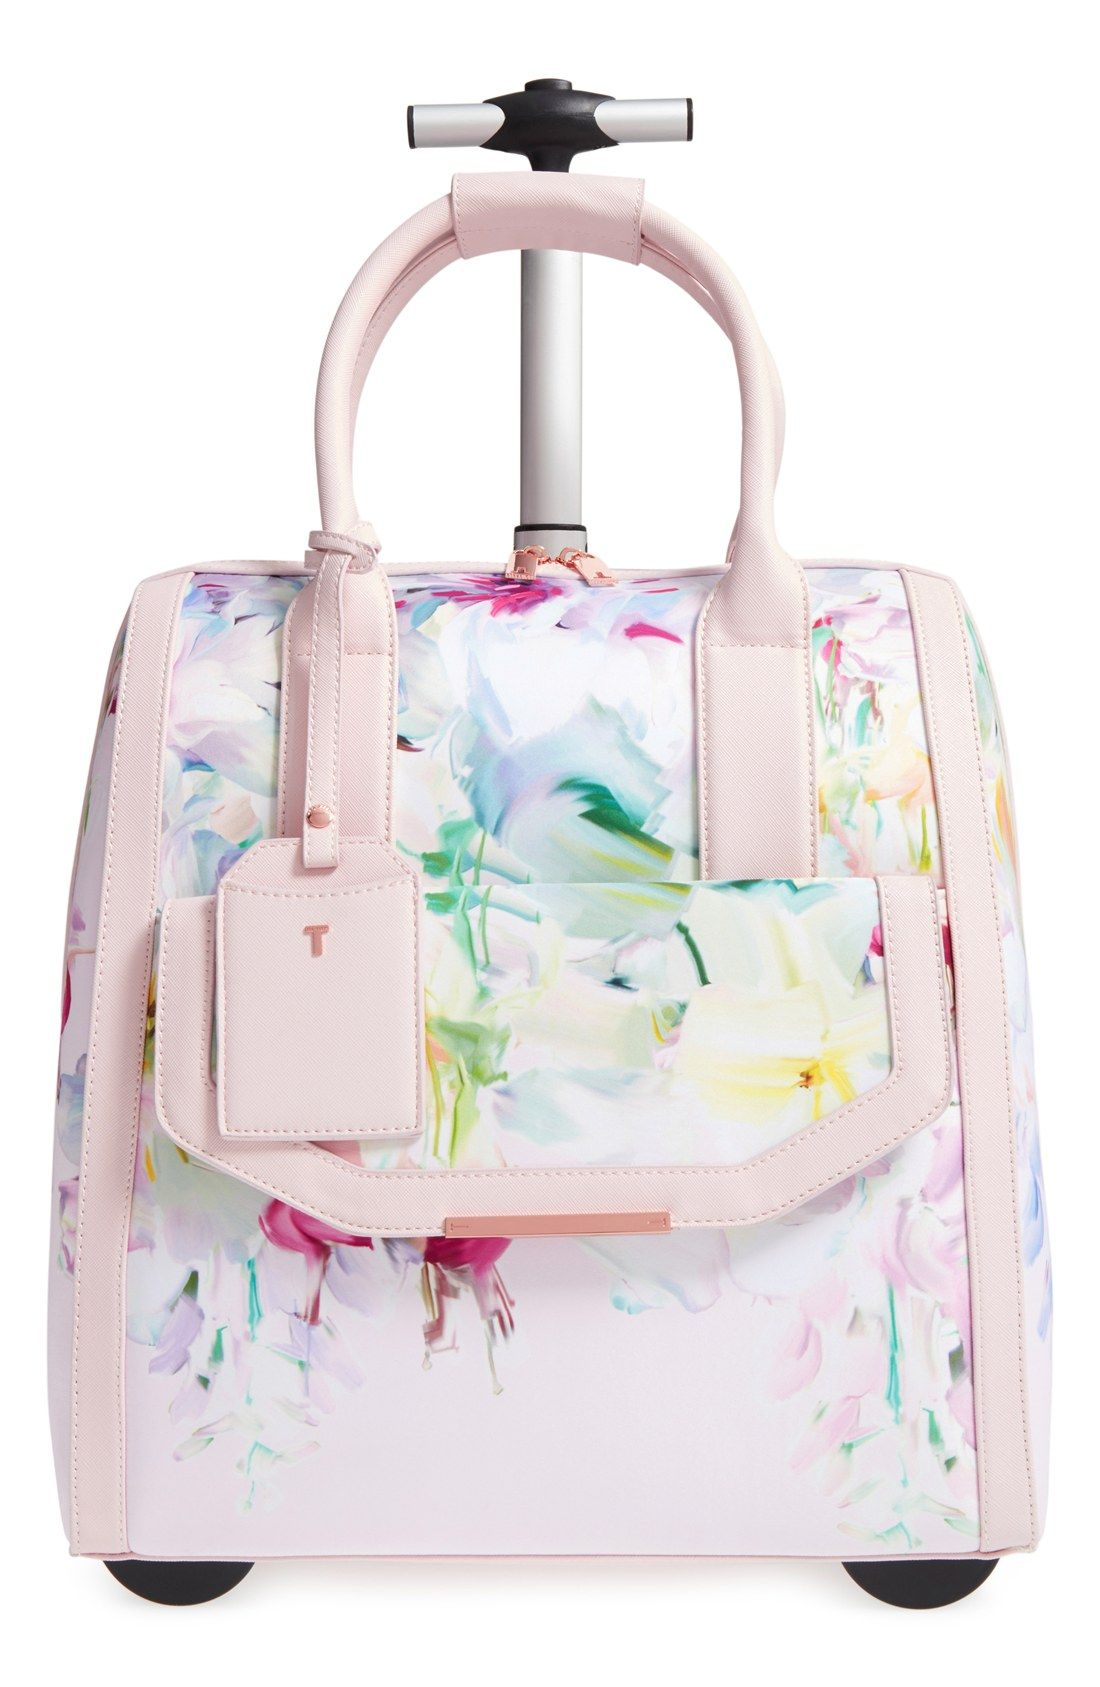 246bf7568a031 Make any getaway a fabulous one with this stylish travel bag ...